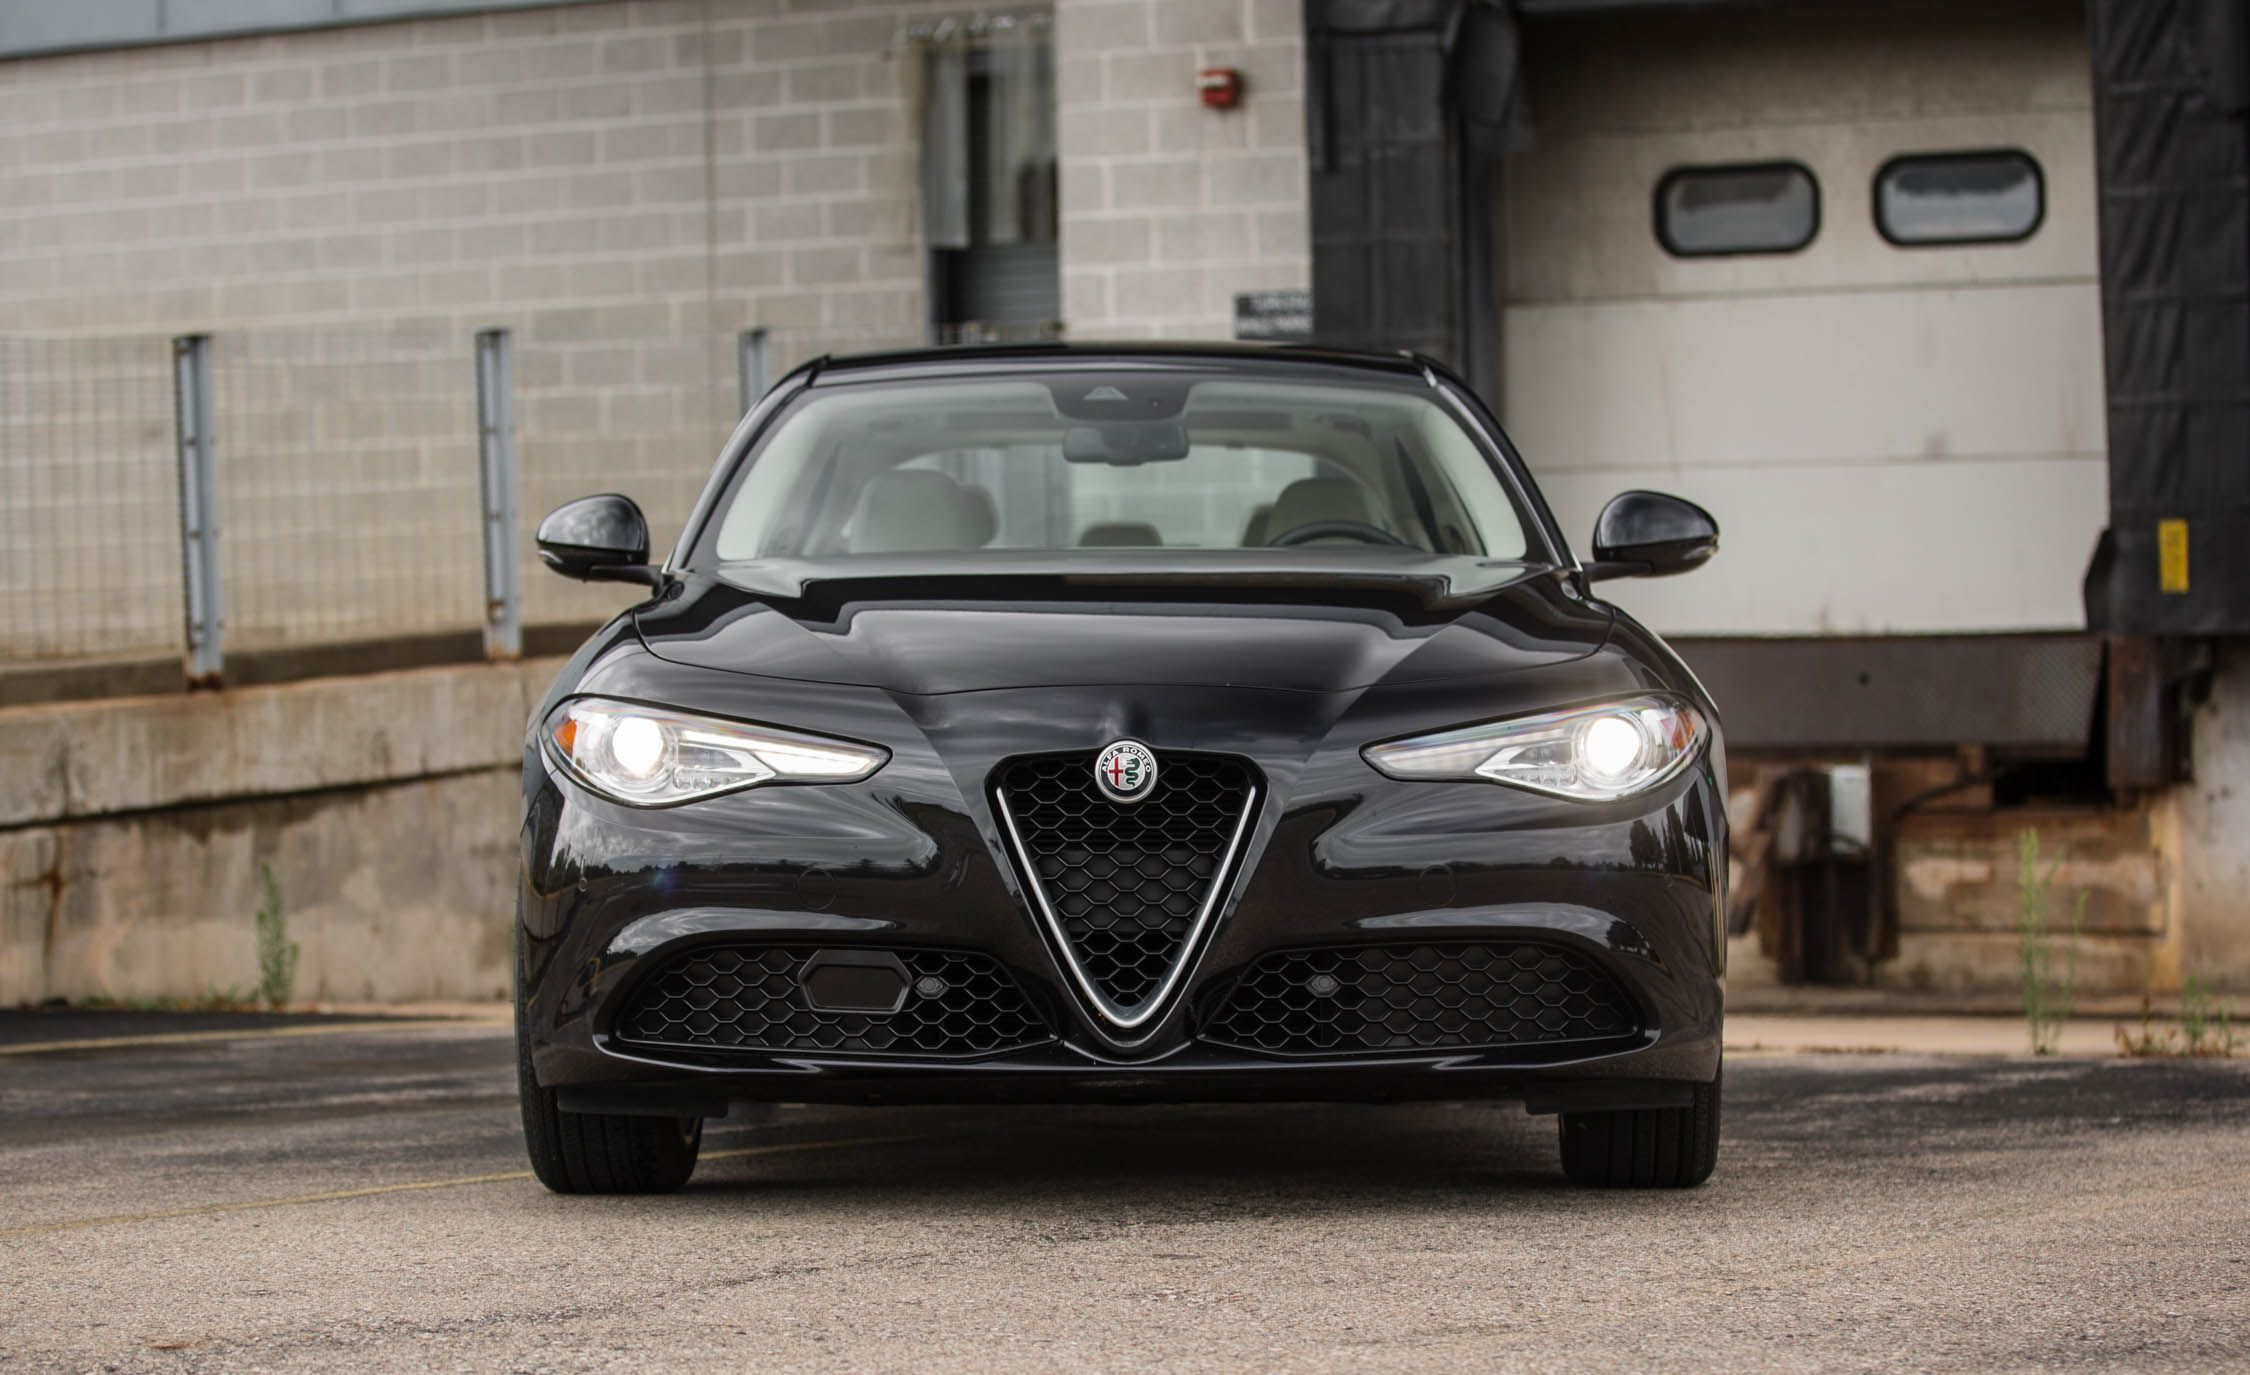 2018 alfa romeo giulia engine and transmission review car and driver. Black Bedroom Furniture Sets. Home Design Ideas